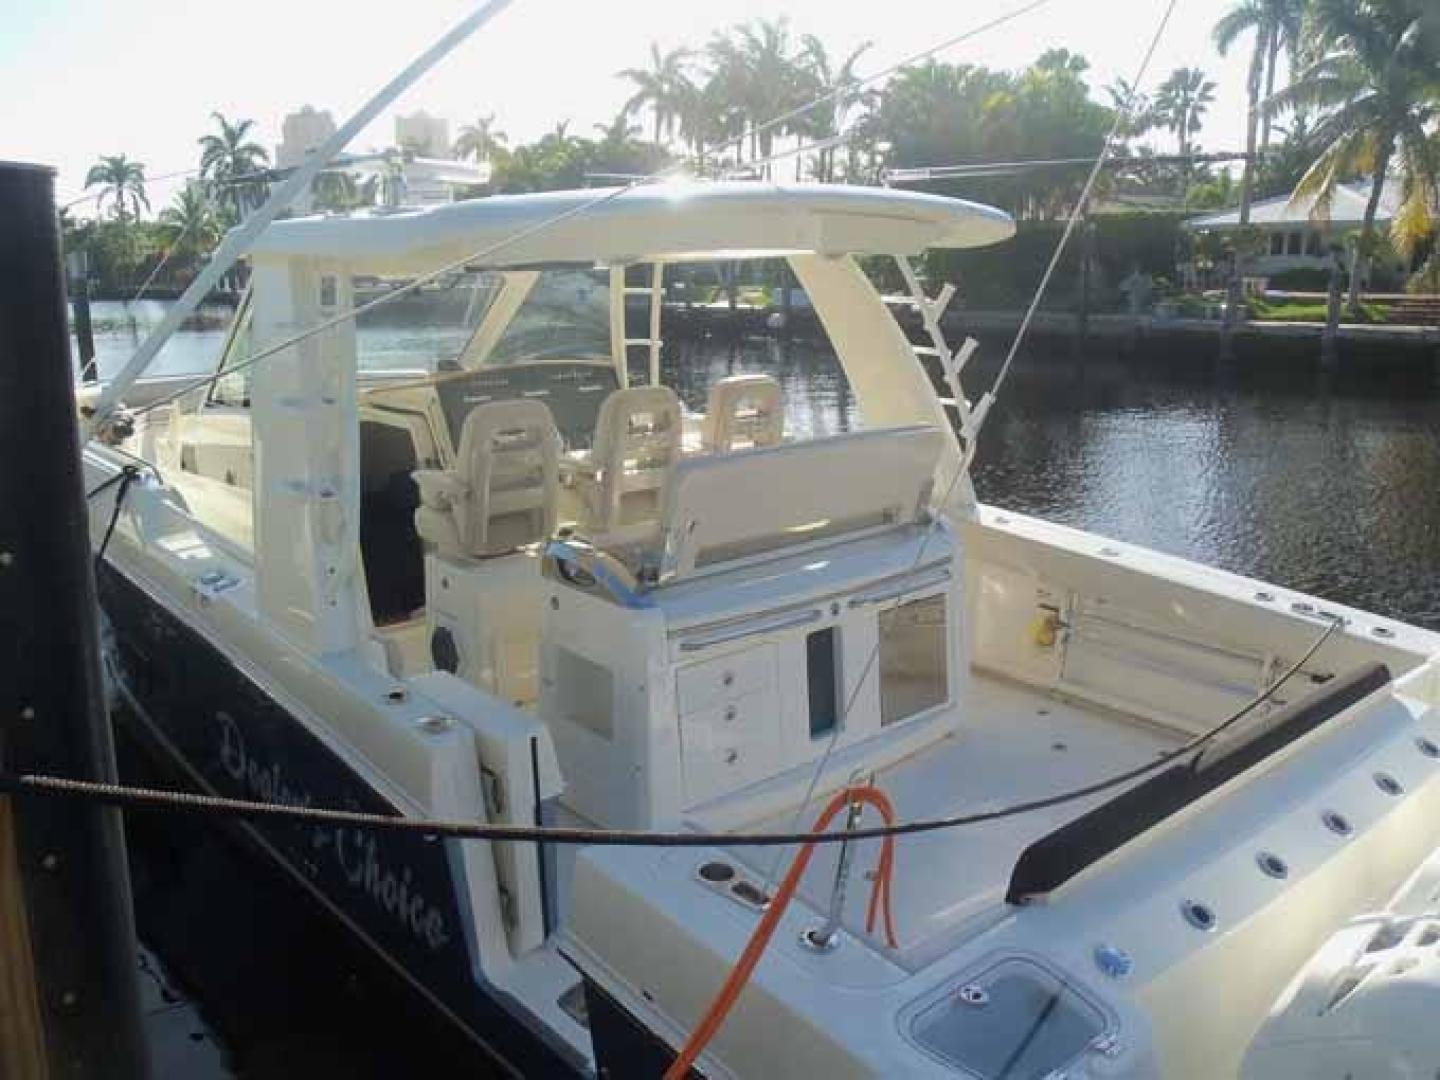 Boston Whaler-Outrage 42 2016-DEALERS CHOICE Ft. Lauderdale-Florida-United States-STERN-1058328 | Thumbnail